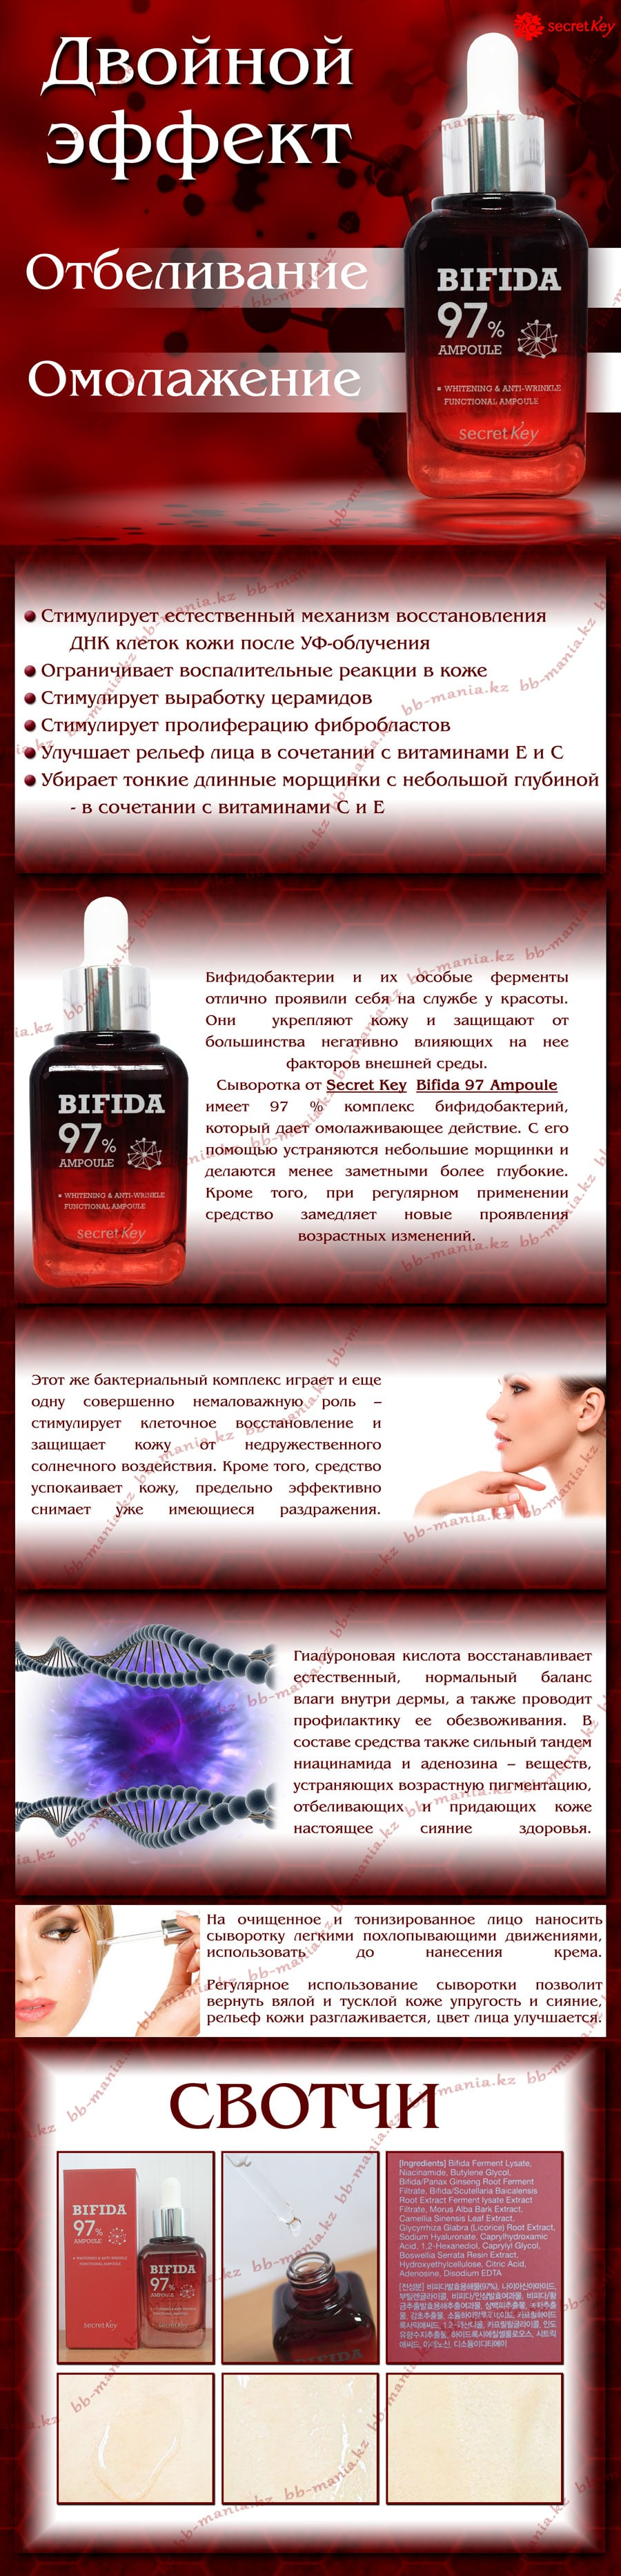 Bifida-97-Ampoule-[Secret-Key]-min